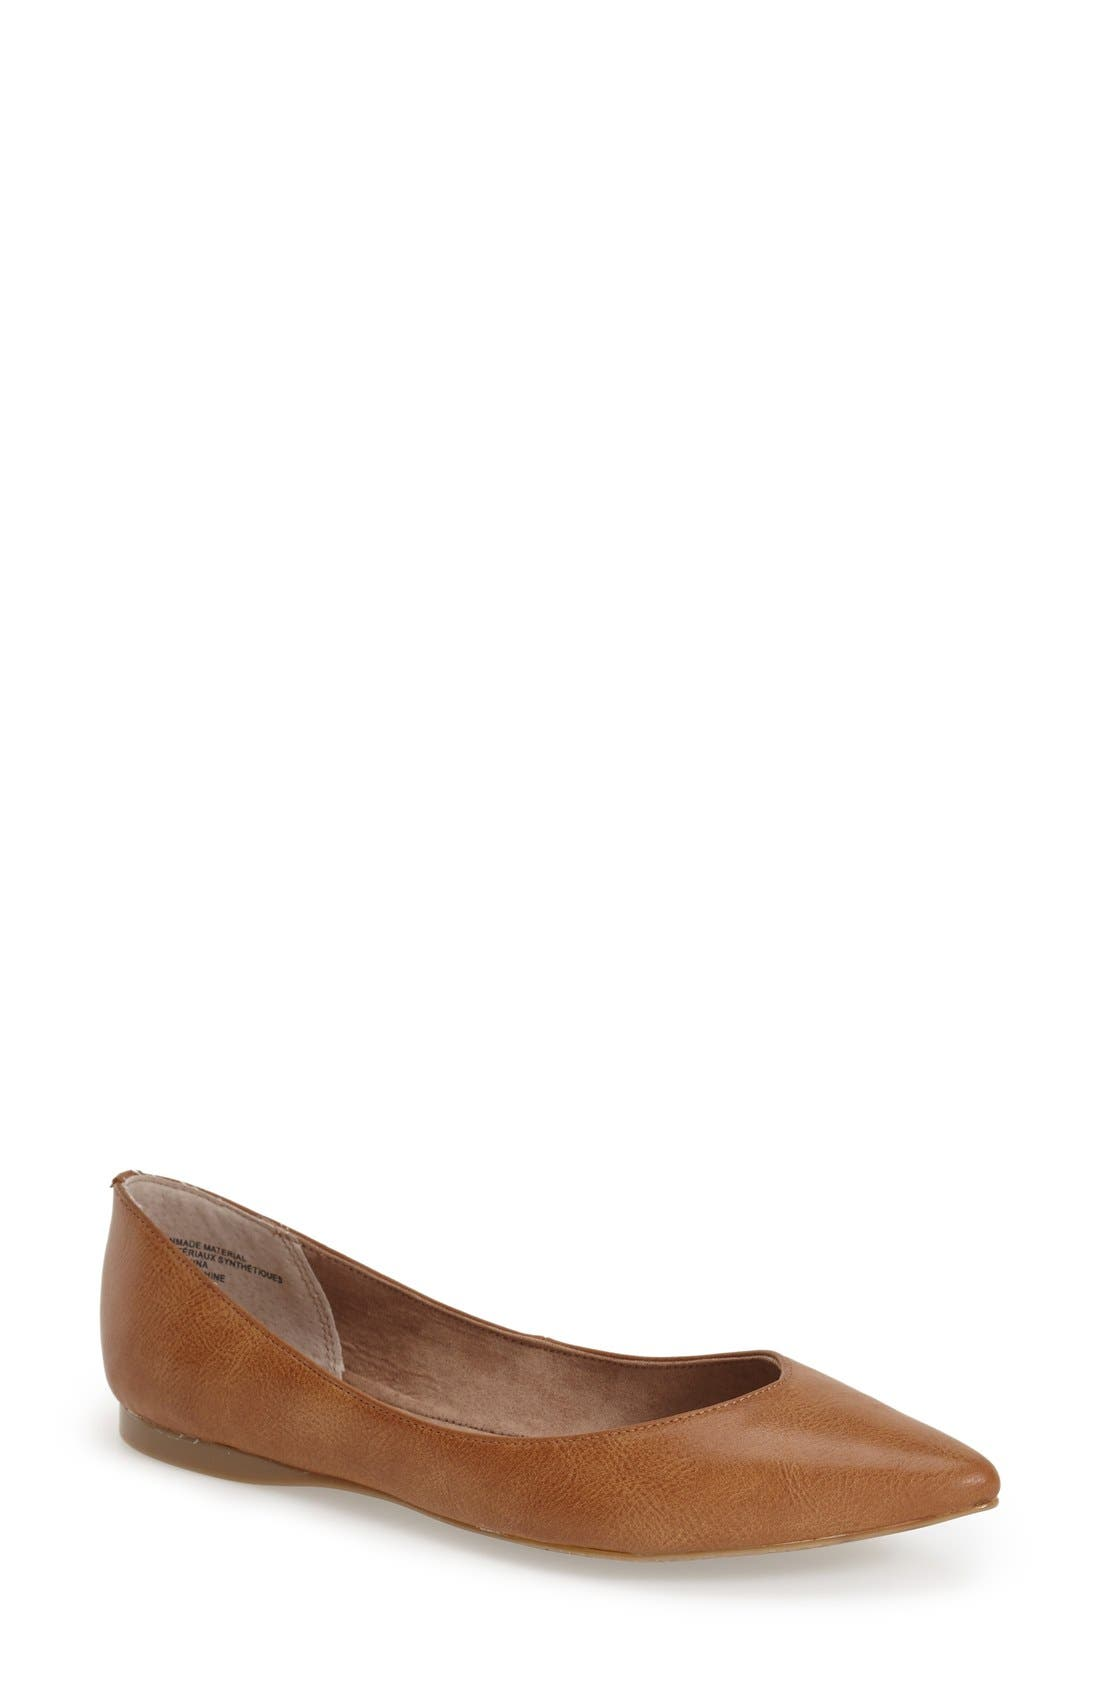 'Moveover' Pointy Toe Flat,                         Main,                         color, 235